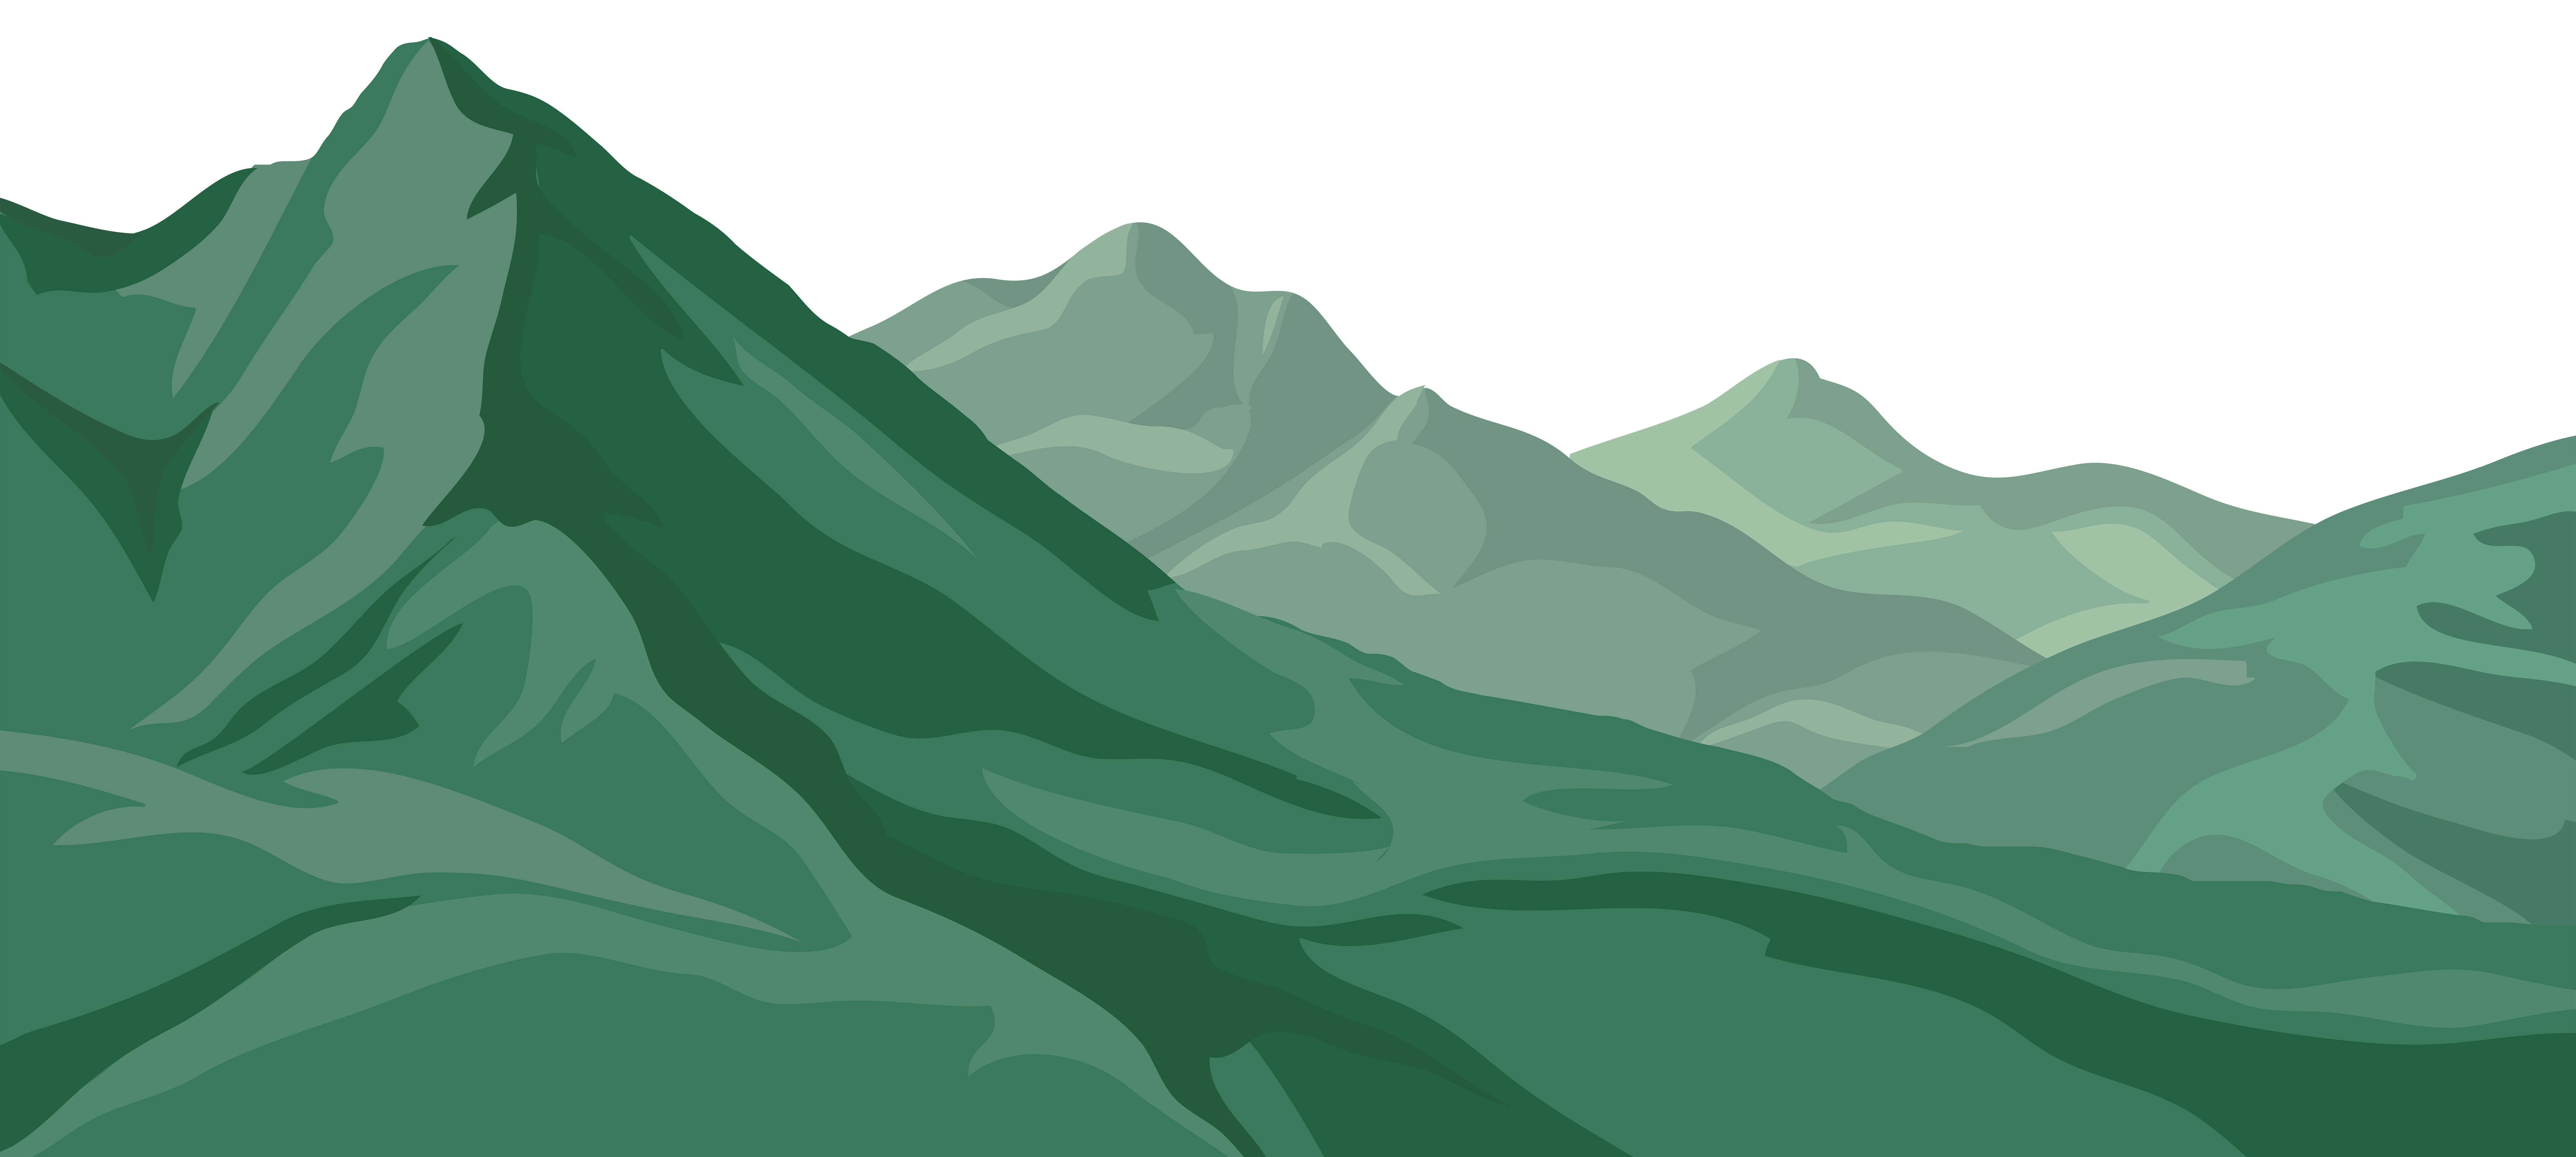 Clipart mountains clip art. Mountain png image gallery